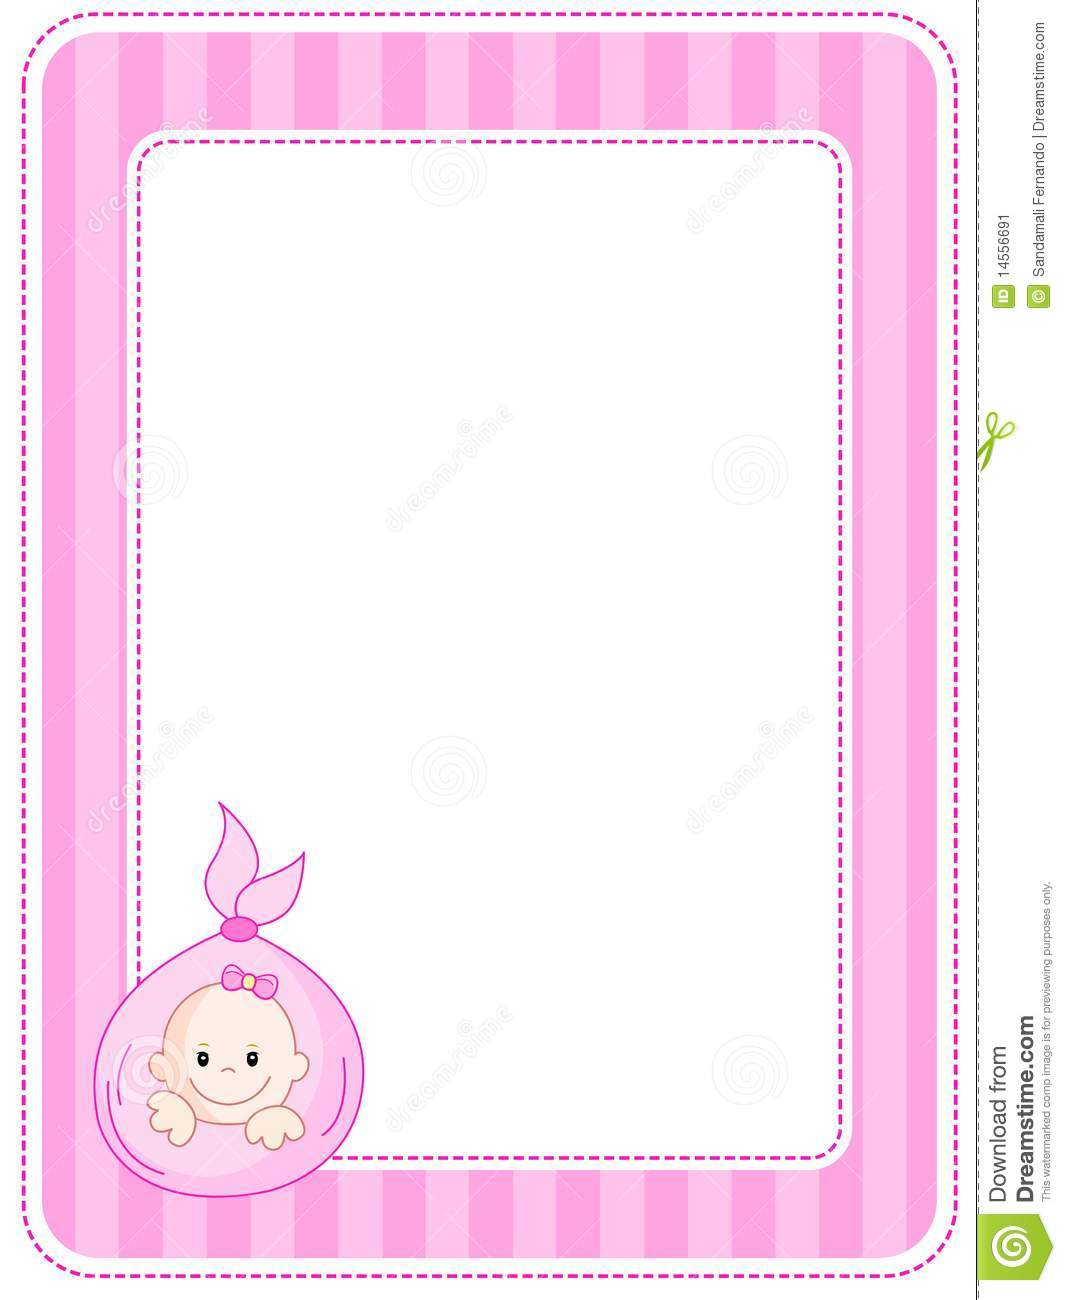 Baby clipart frame Photo borders baby frames Clipart